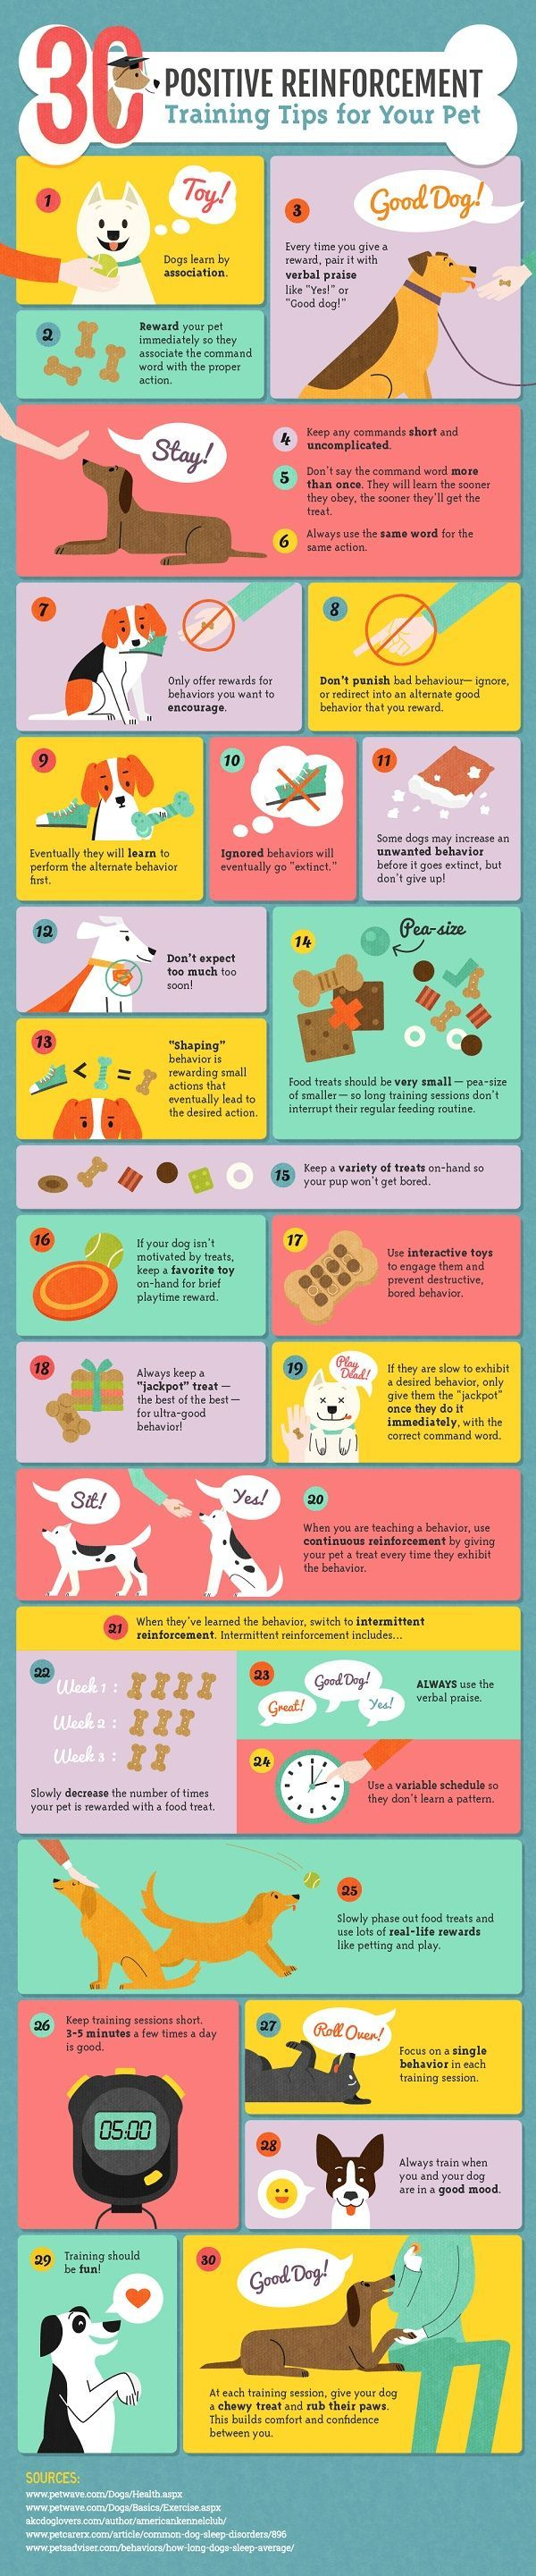 Positive Reinforcement Training for Dogs-Infographic by Amber Kingsley: @KaufmannsPuppy